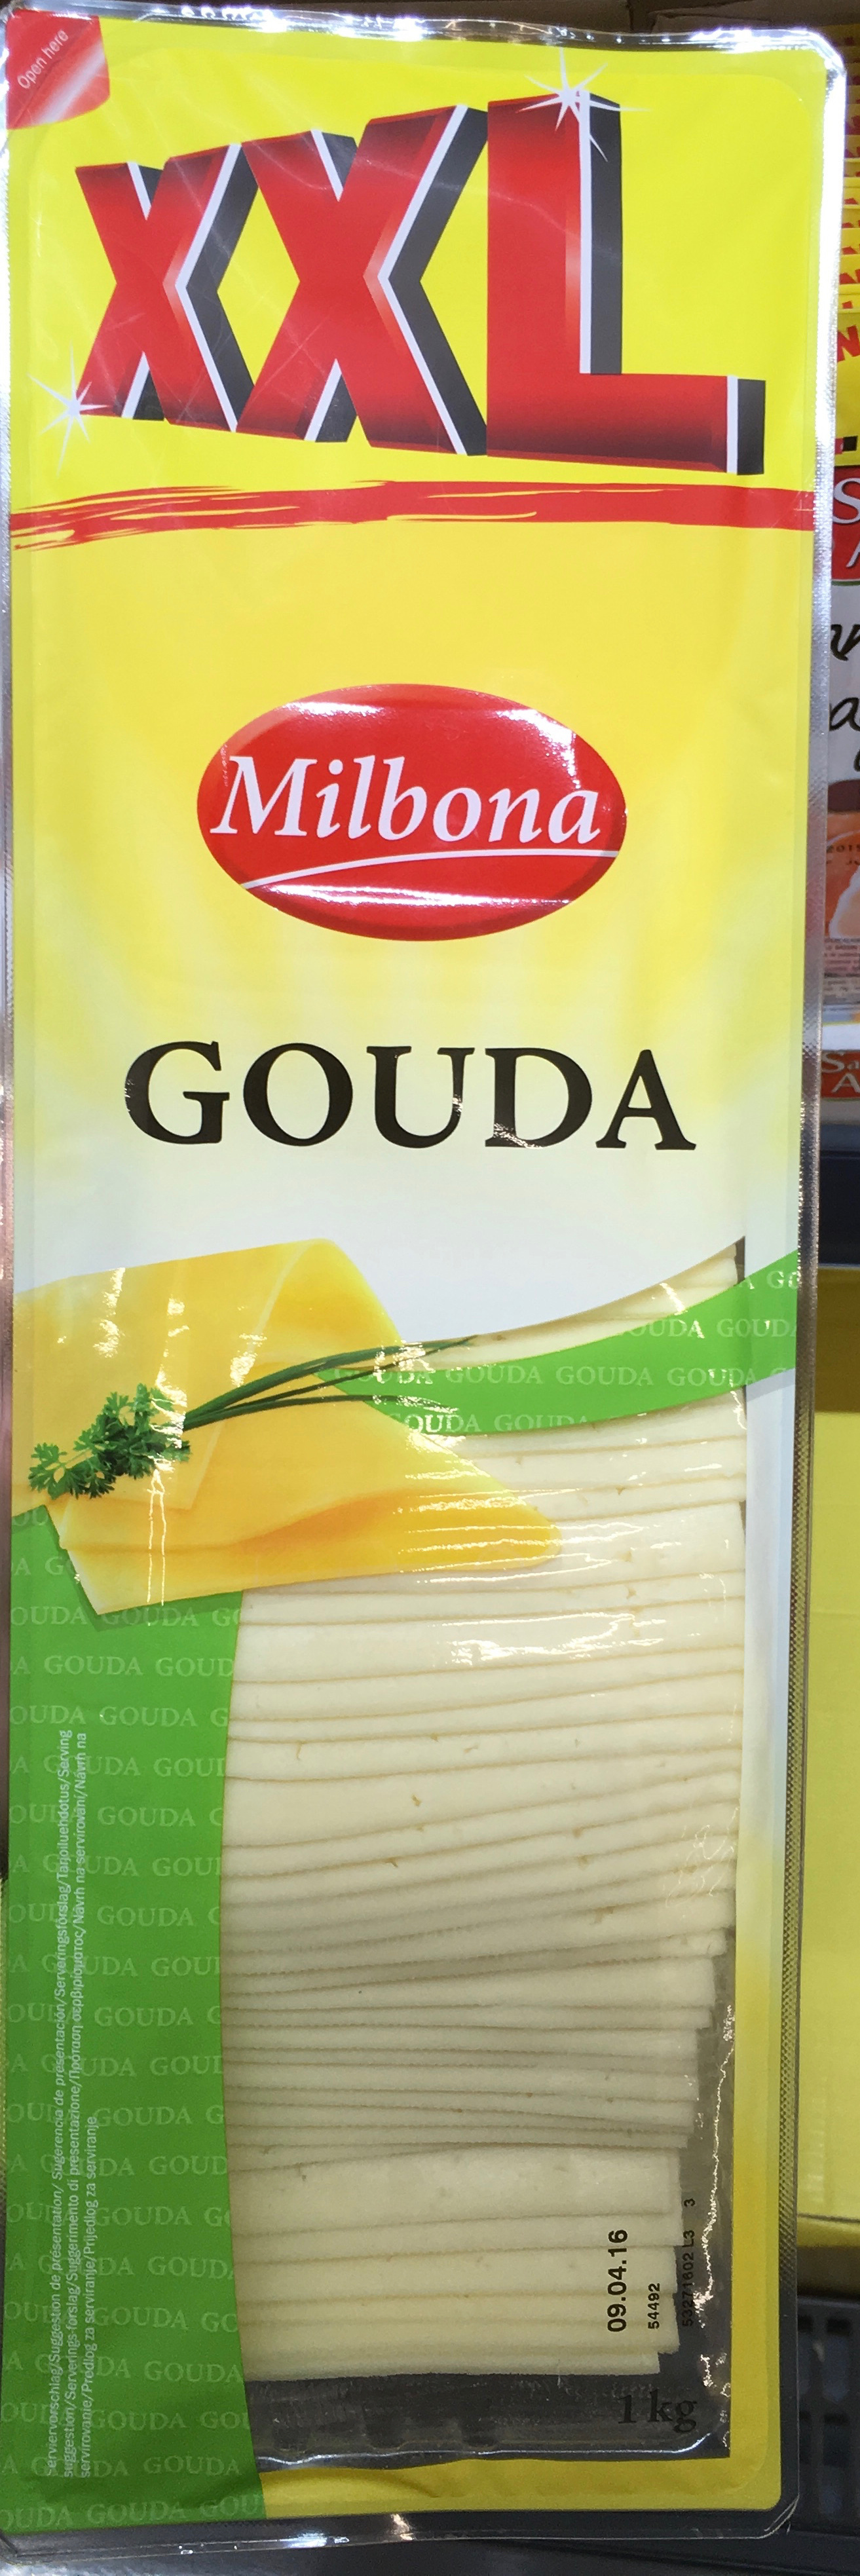 Gouda (29% MG) - Product - fr